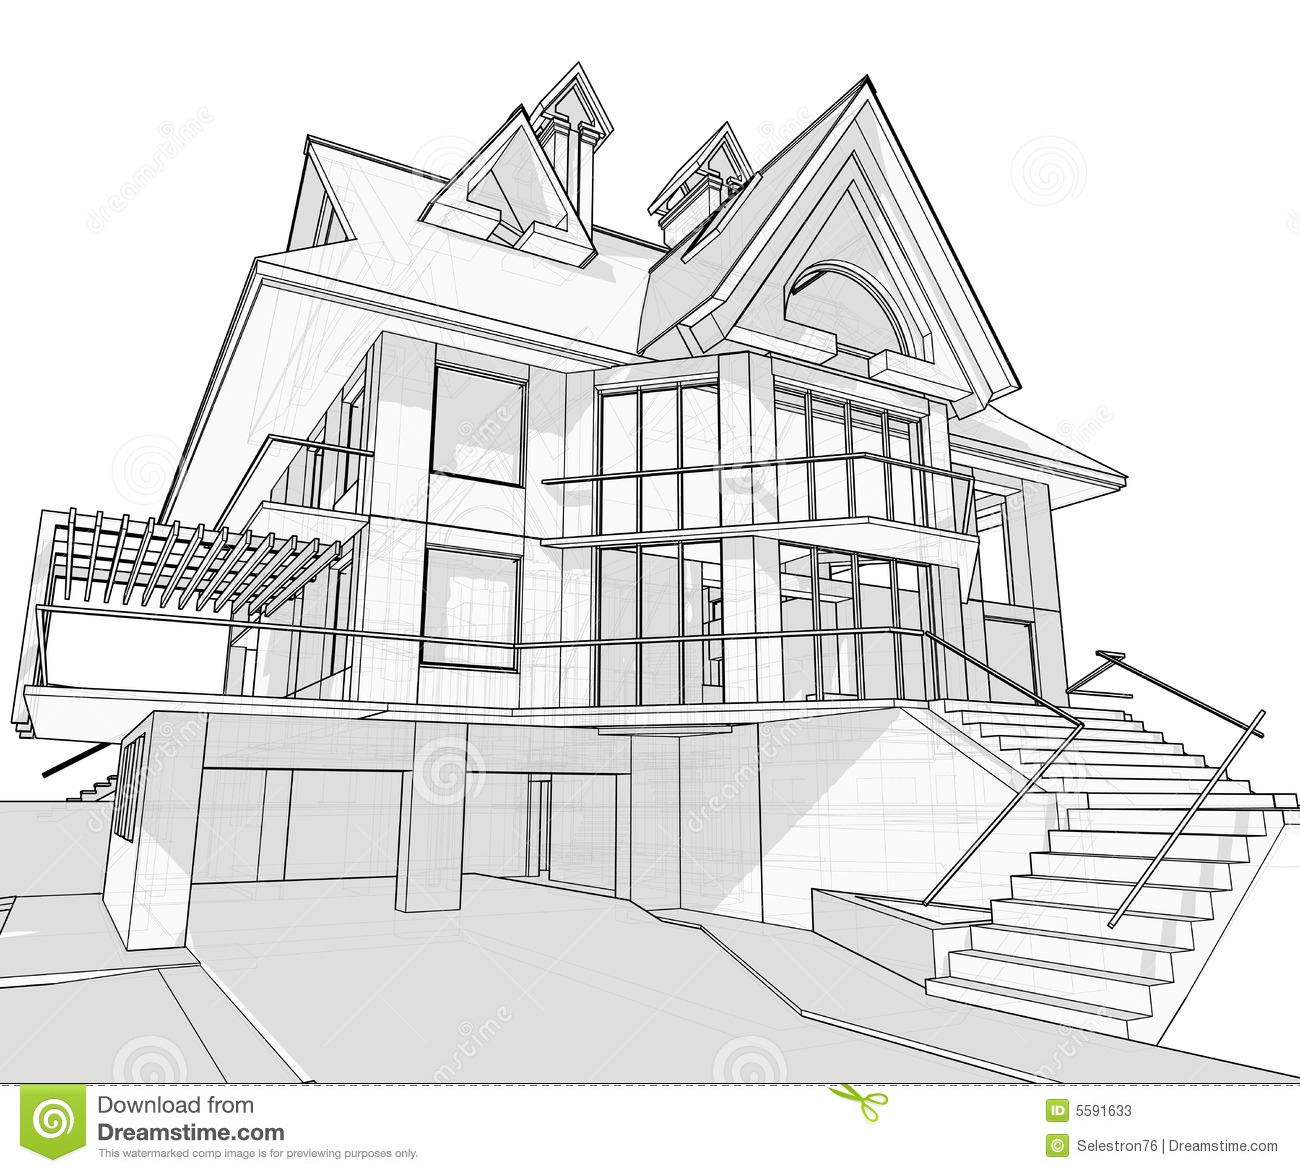 Download House   Architecture Blueprint Stock Vector   Illustration Of  Architecture, Element: 5591633